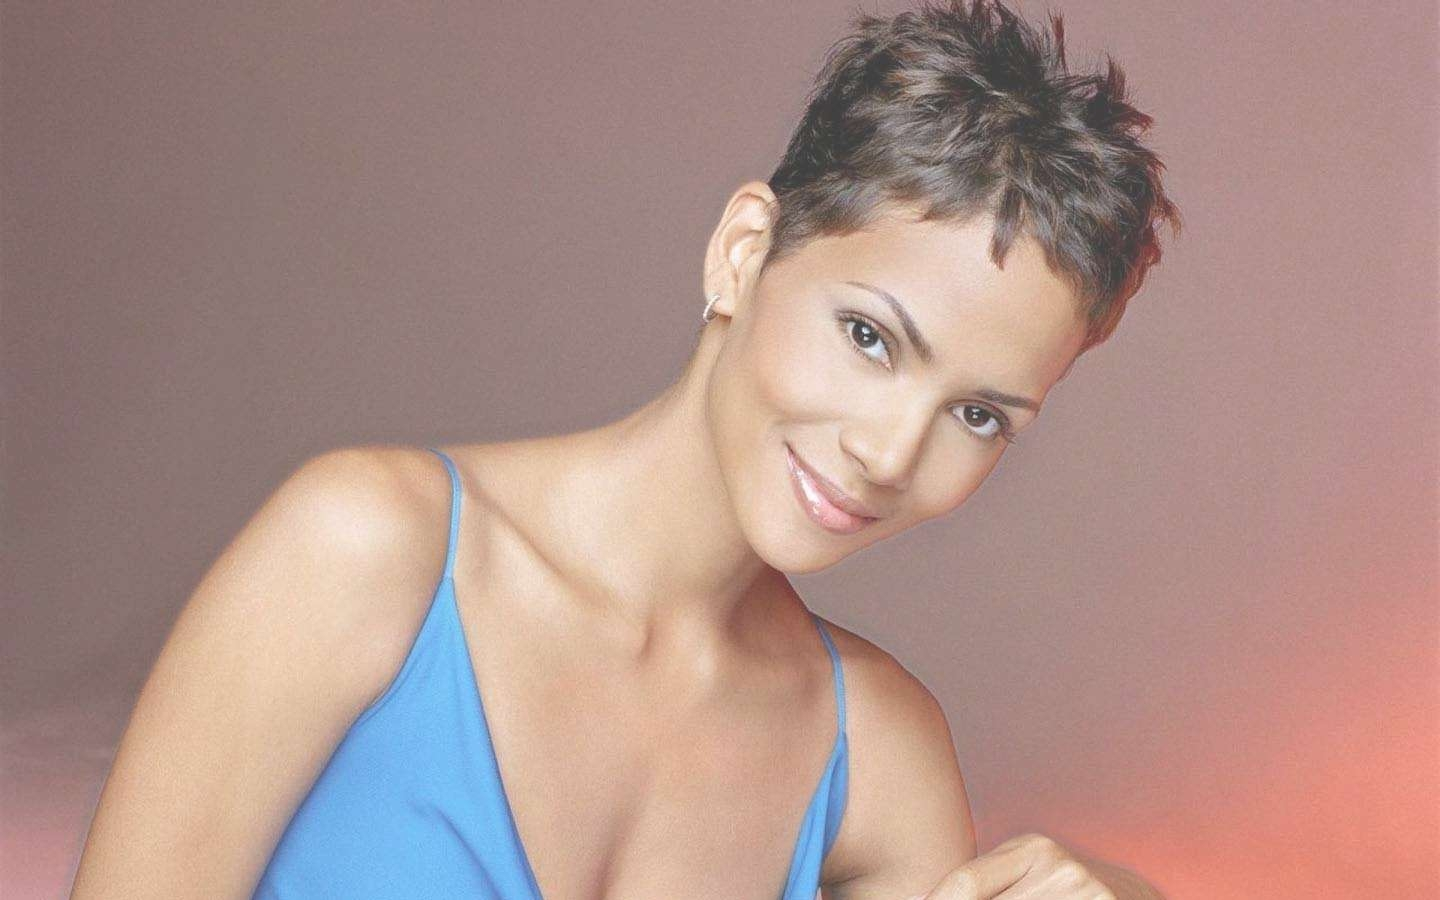 Short Pixie Hairstyles For Black Women Awesome Short Hairstyles For 2018 Black Women With Pixie Hairstyles (View 13 of 15)